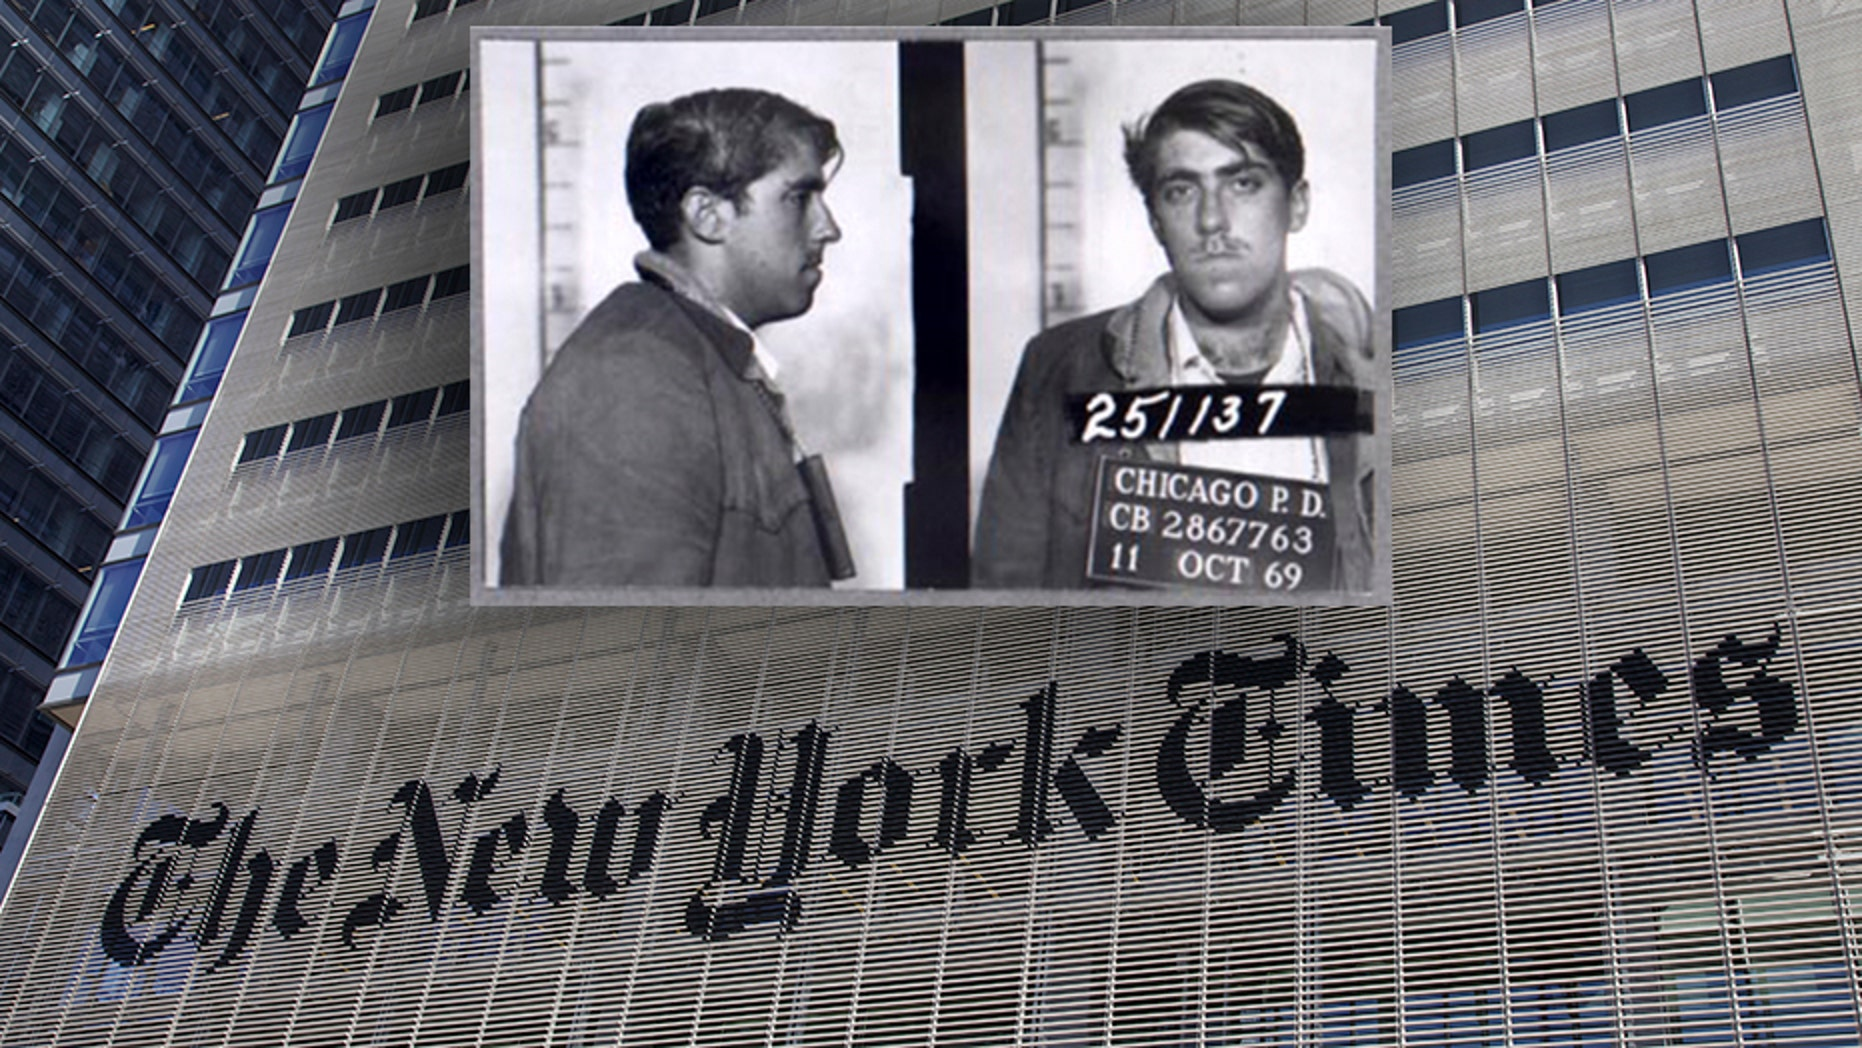 The New York Times fails to mention the criminal past of op-ed contributor Mark Rudd.